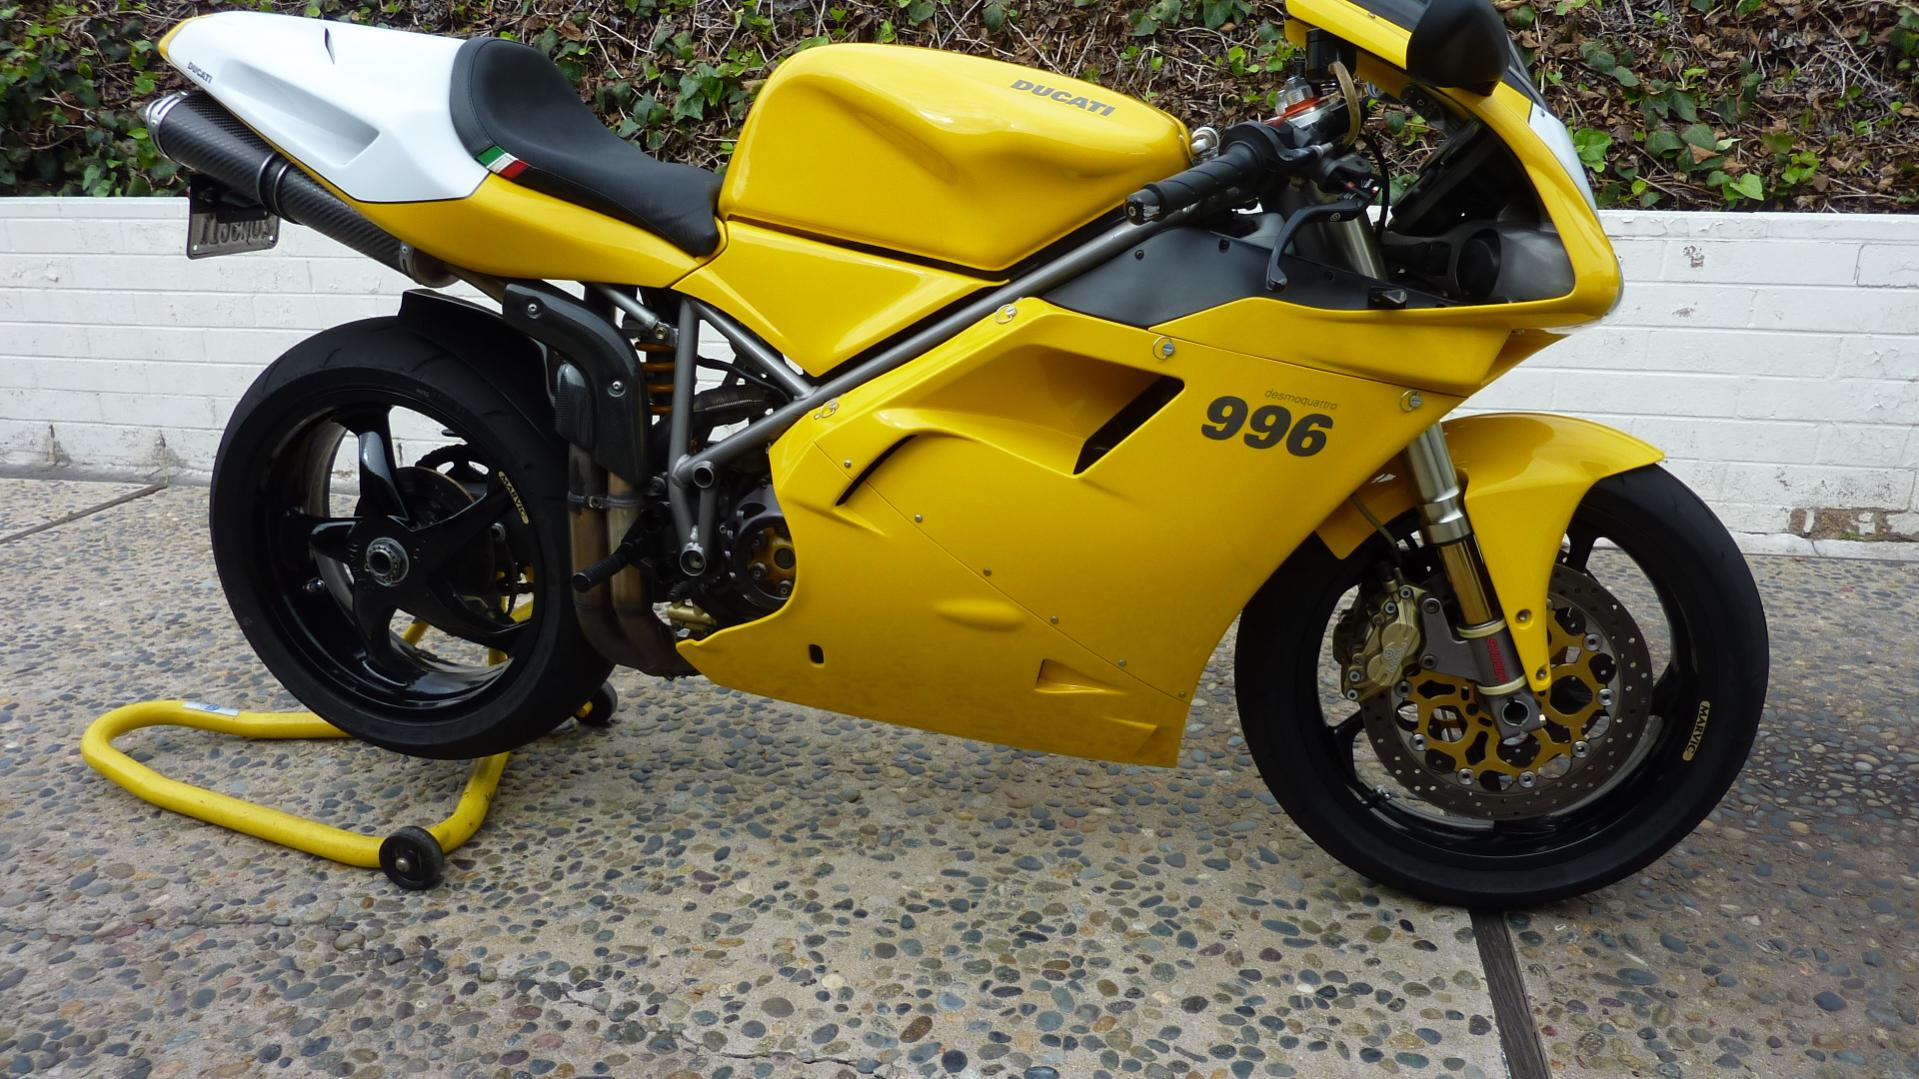 Ducati 996 2000 wallpapers #11248